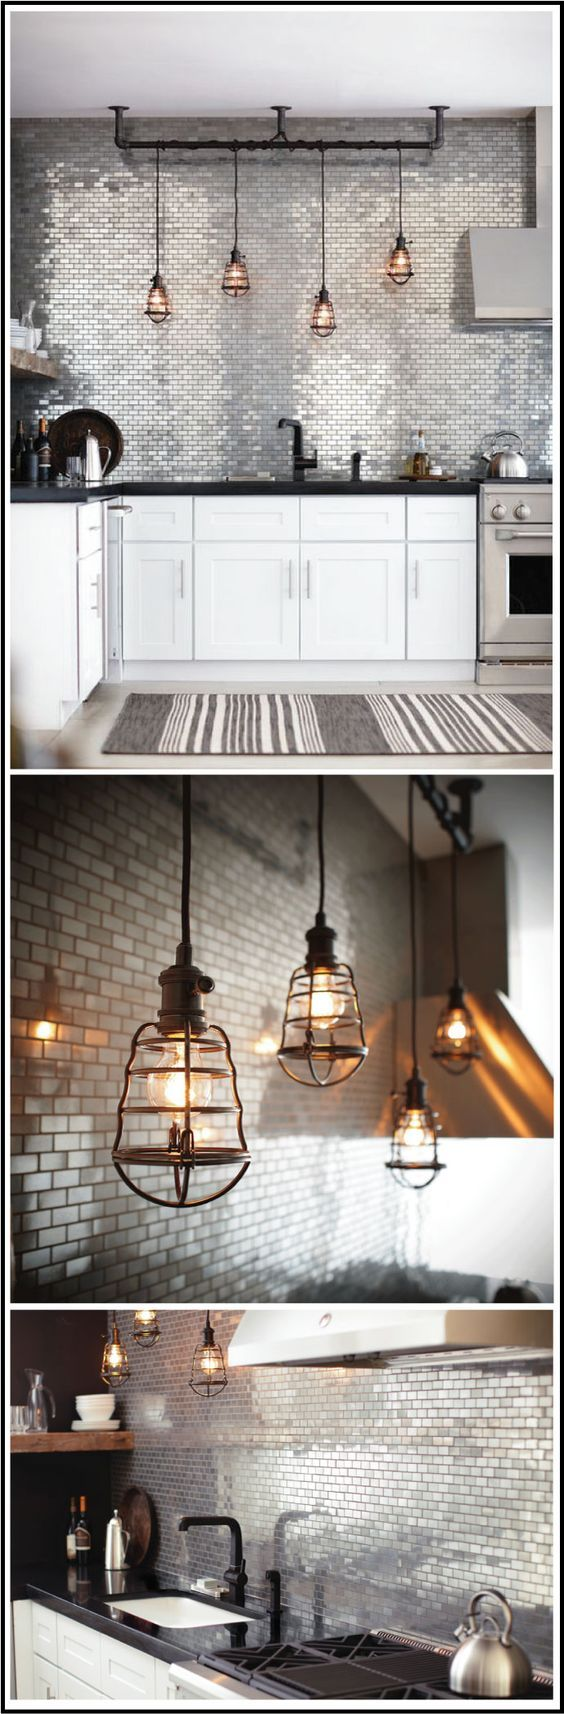 Love this Industrial style kitchen! The tile backsplash is fantastic and don't forget about the Edison/ Vintage style light bulbs! #HomeBeginsHere #InteriorDesign